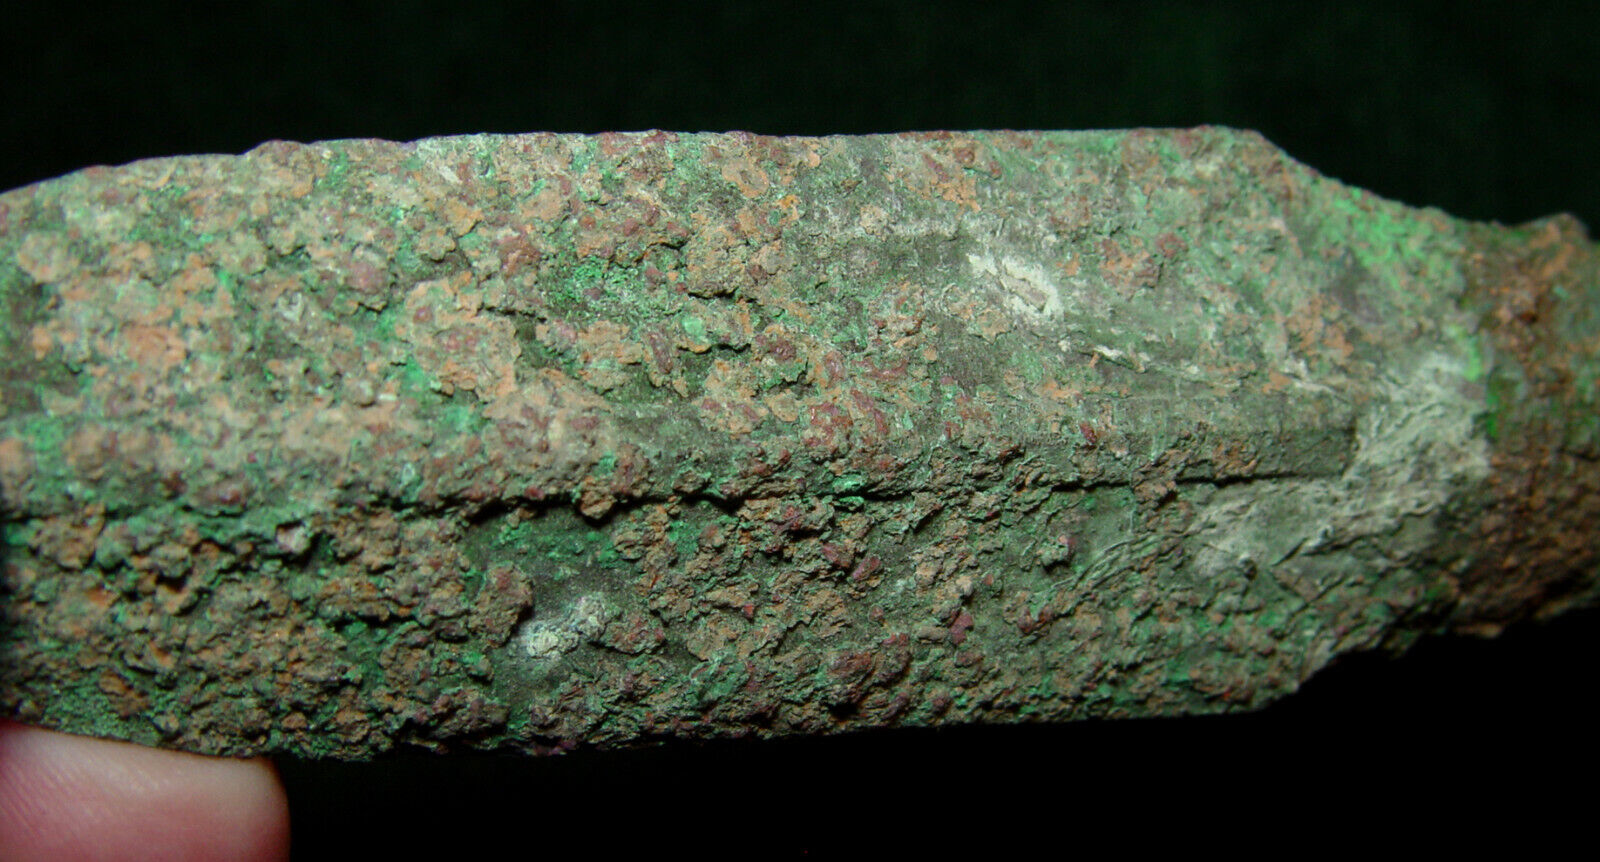 Canaanite Middle Bronze Age Circa 1500 BC  Bronze Spearhead from Holy Land